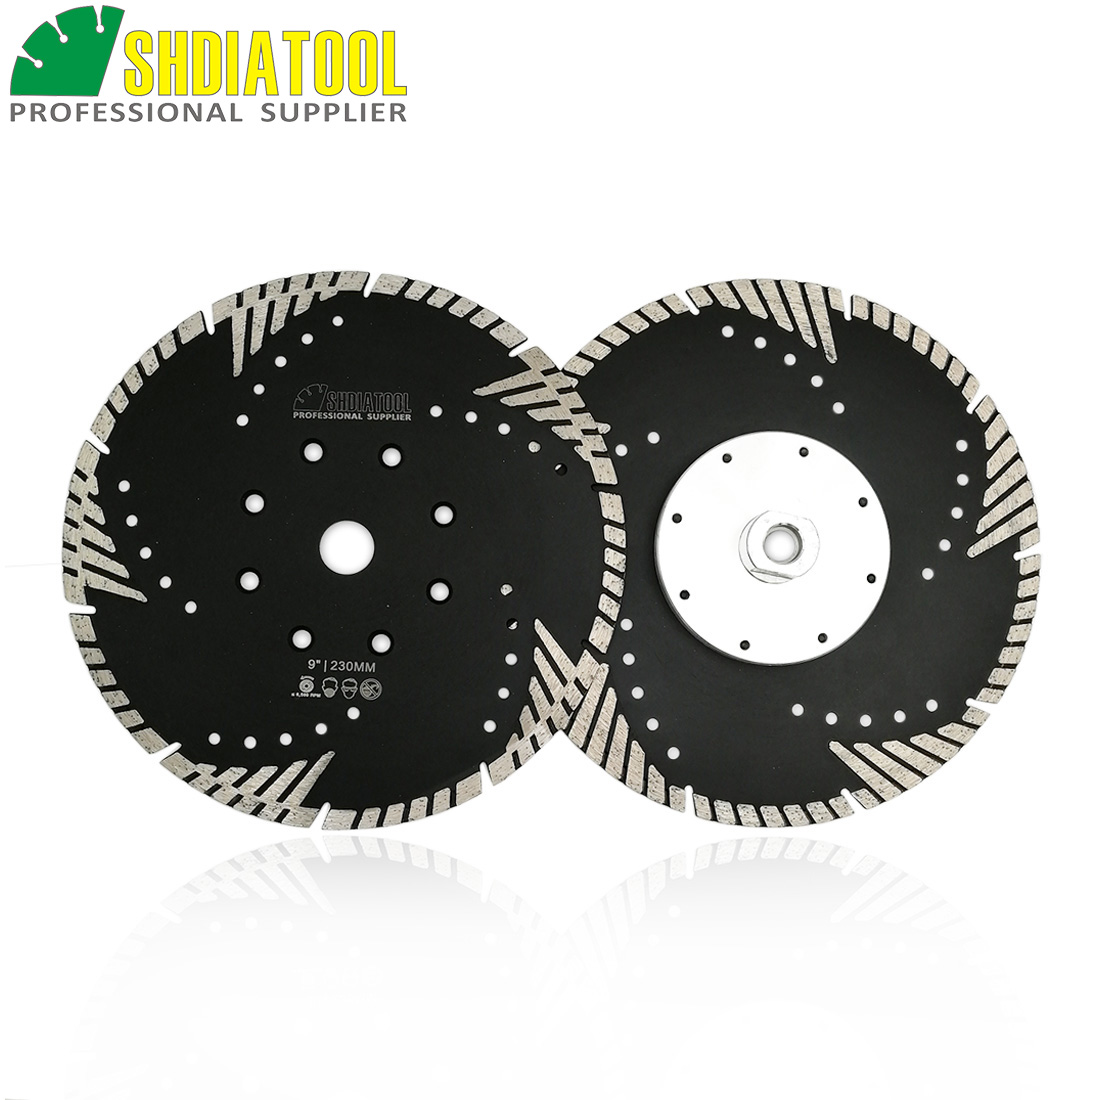 SHDIATOOL 2PCS Hot Pressed Diamond Turbo Blade With Slant Protection Teeth (230mm)cutting Disc With M14 Flange